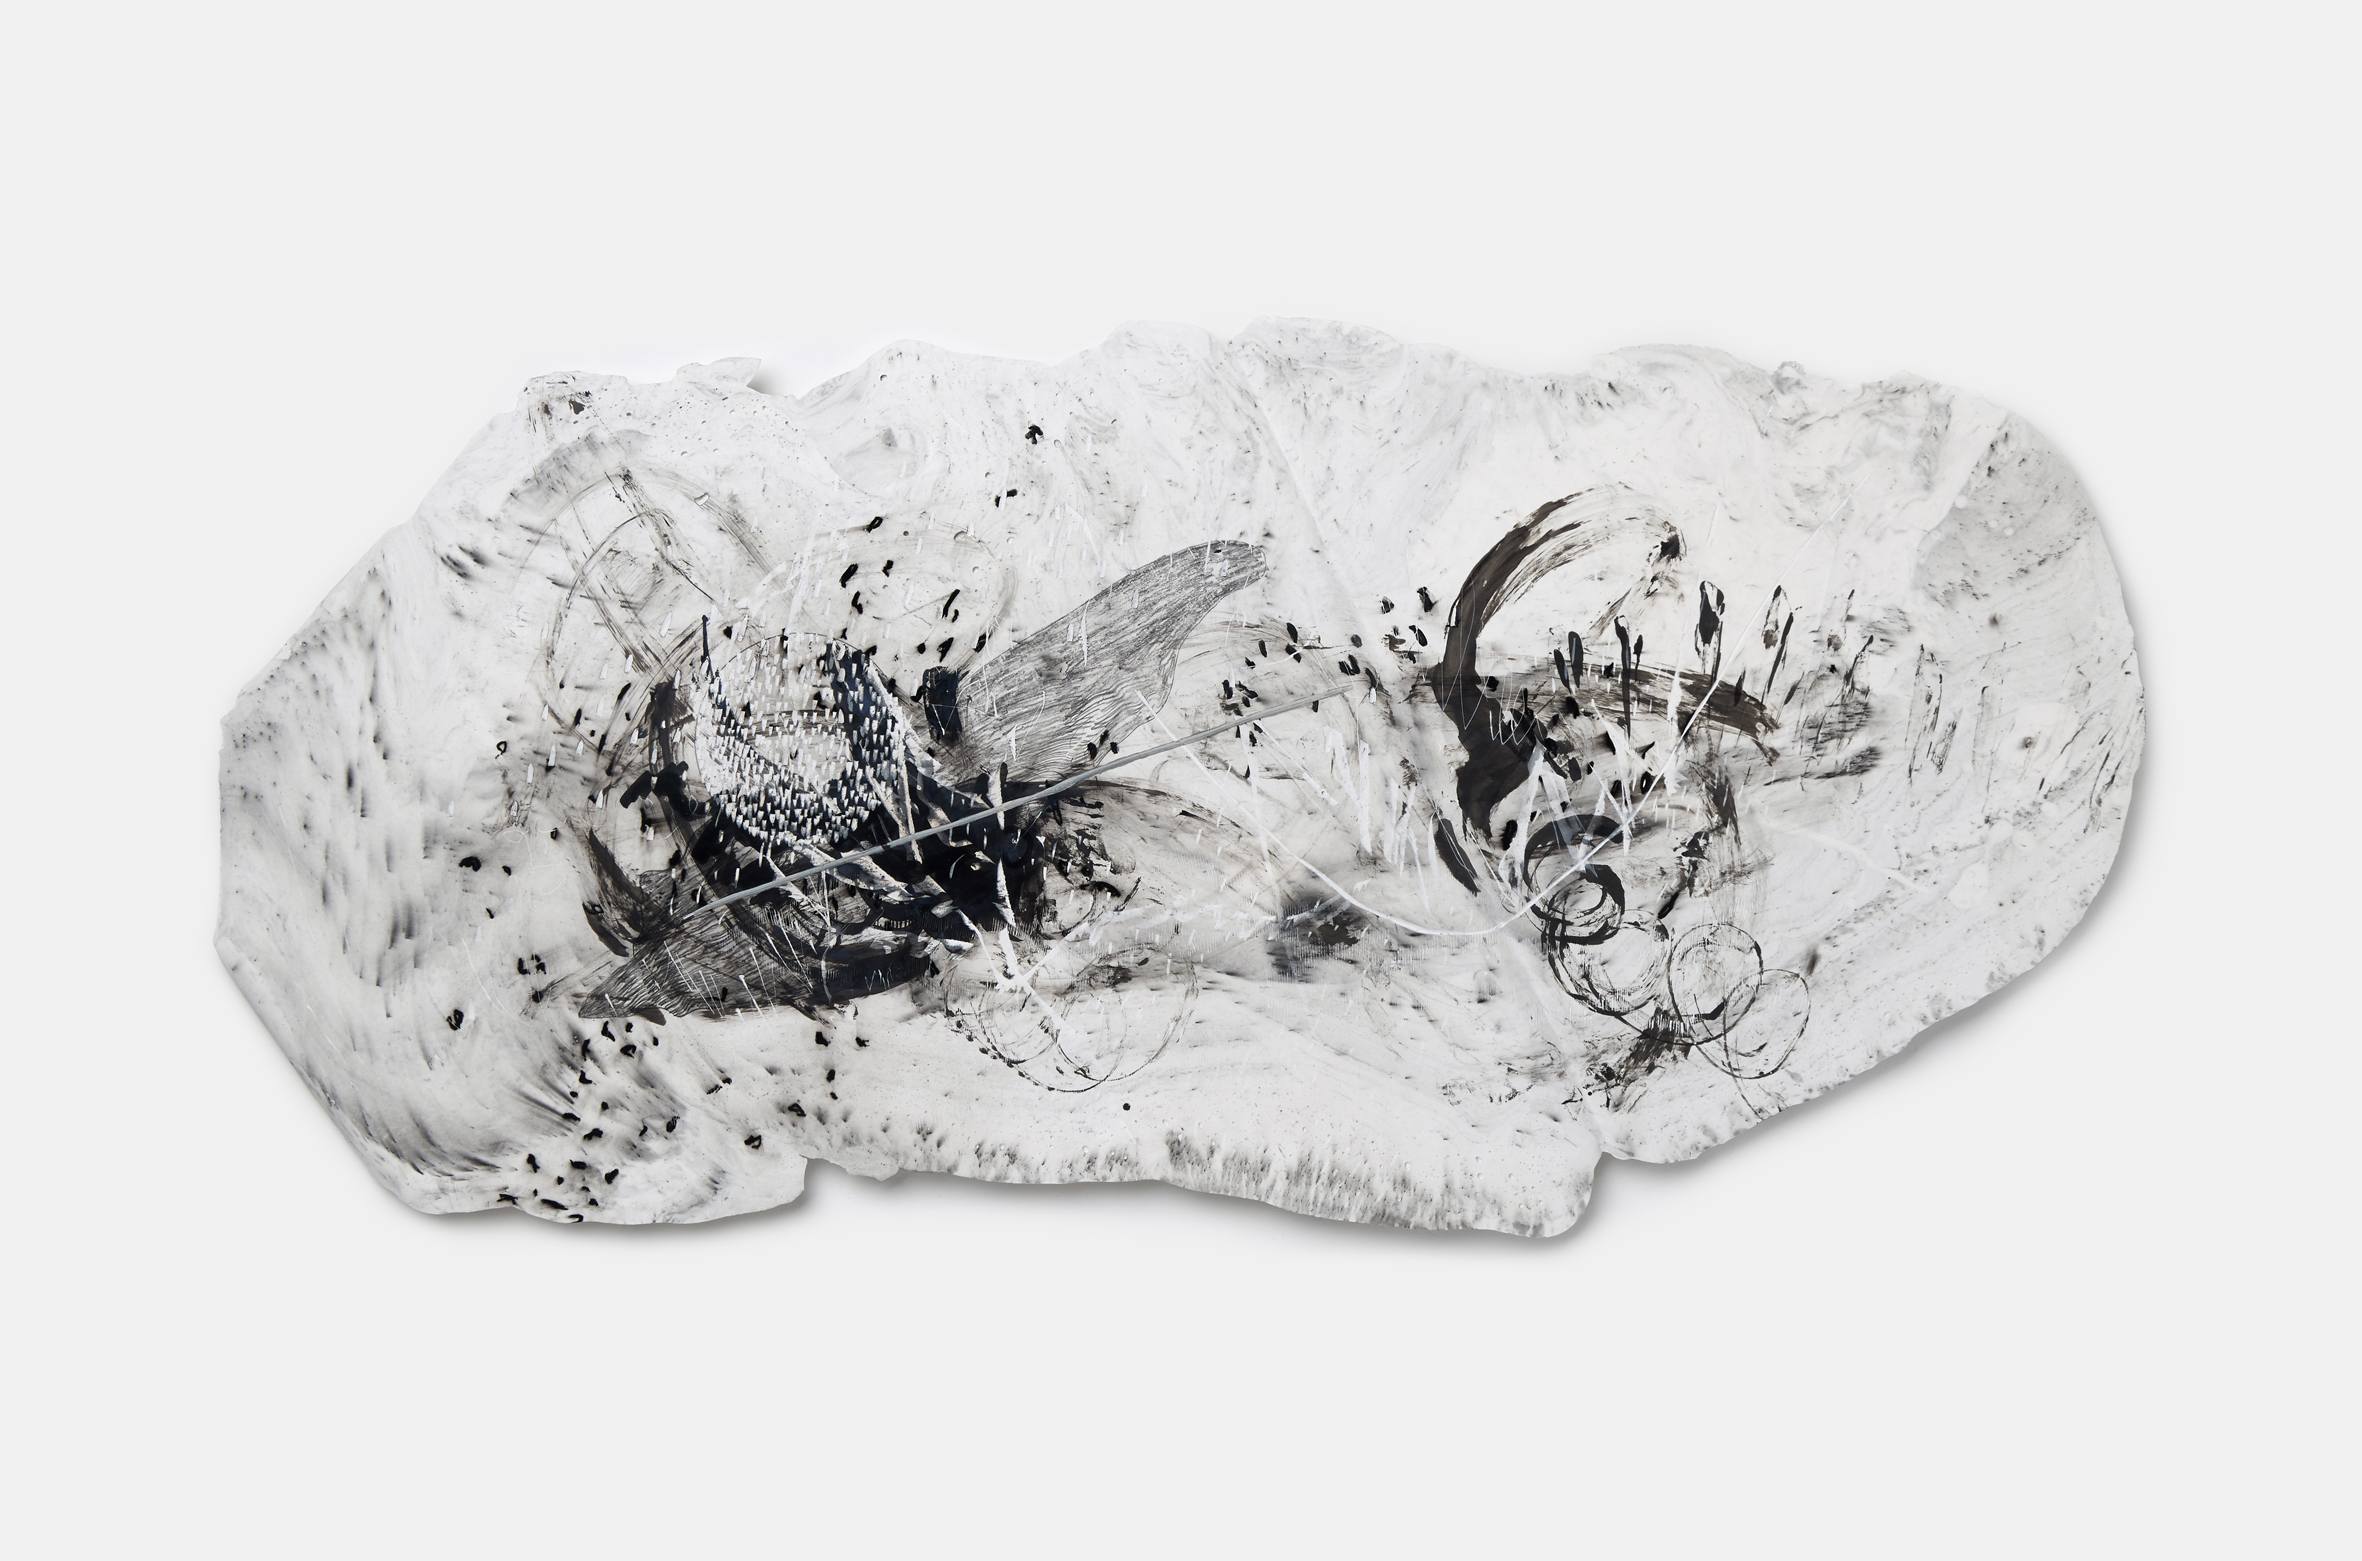 Vomit series #4  Engraving on plaster panel, mixture of ink and dry materials, silver sumi ink, pencil, oil pastel 68x33cm 2018